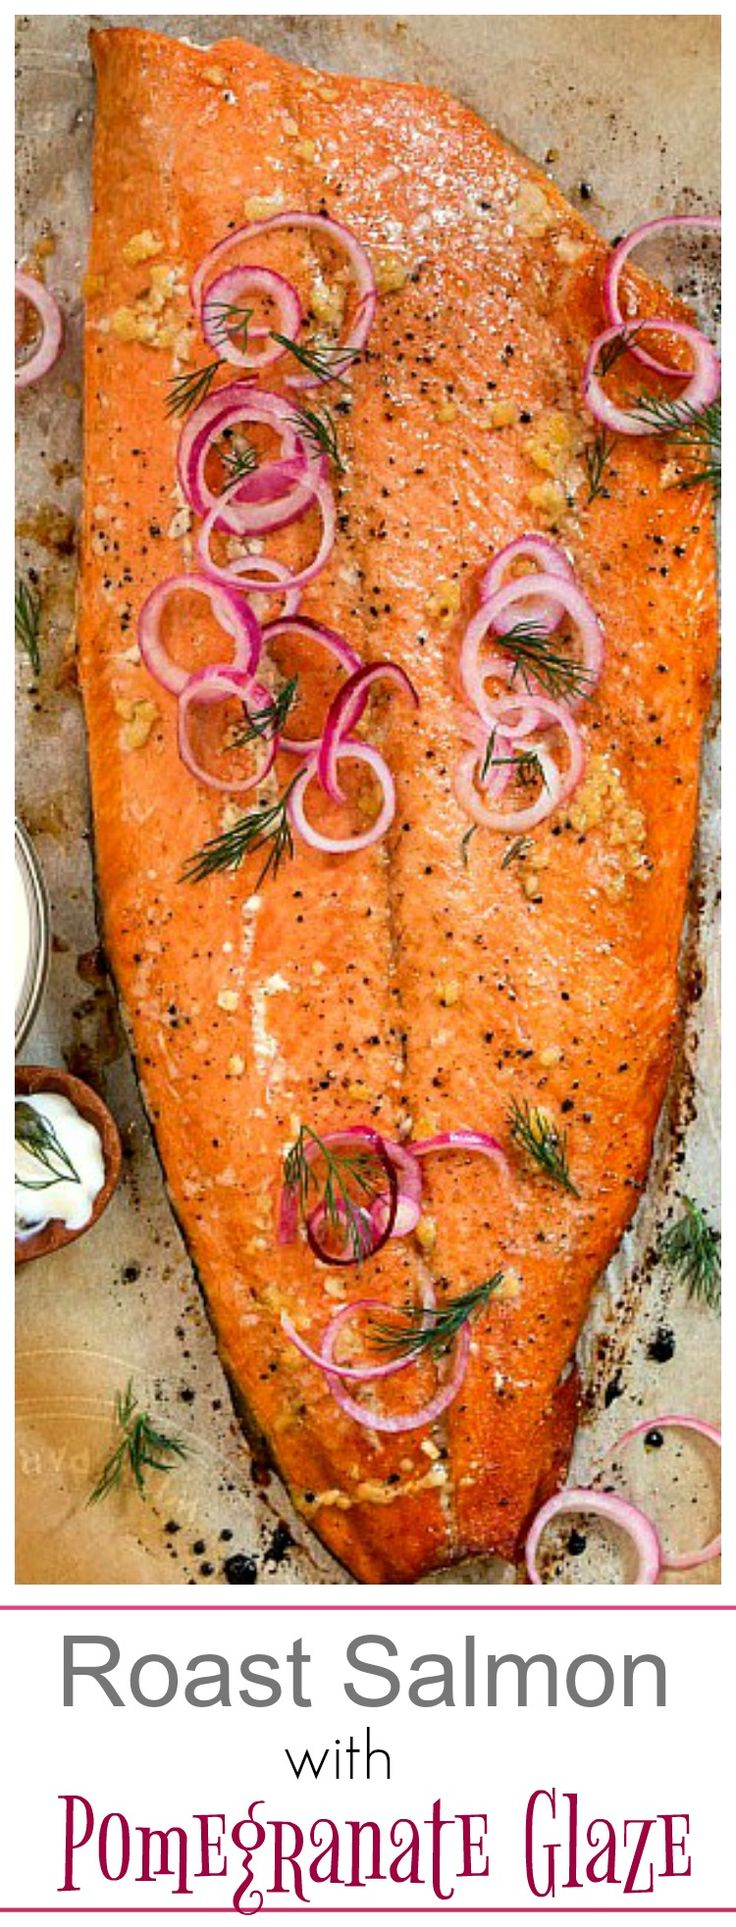 Tangy pomegranate glaze on roast salmon topped with quick pickled onions and a scoop of herb mayo. From Simply Fresh Dinners!